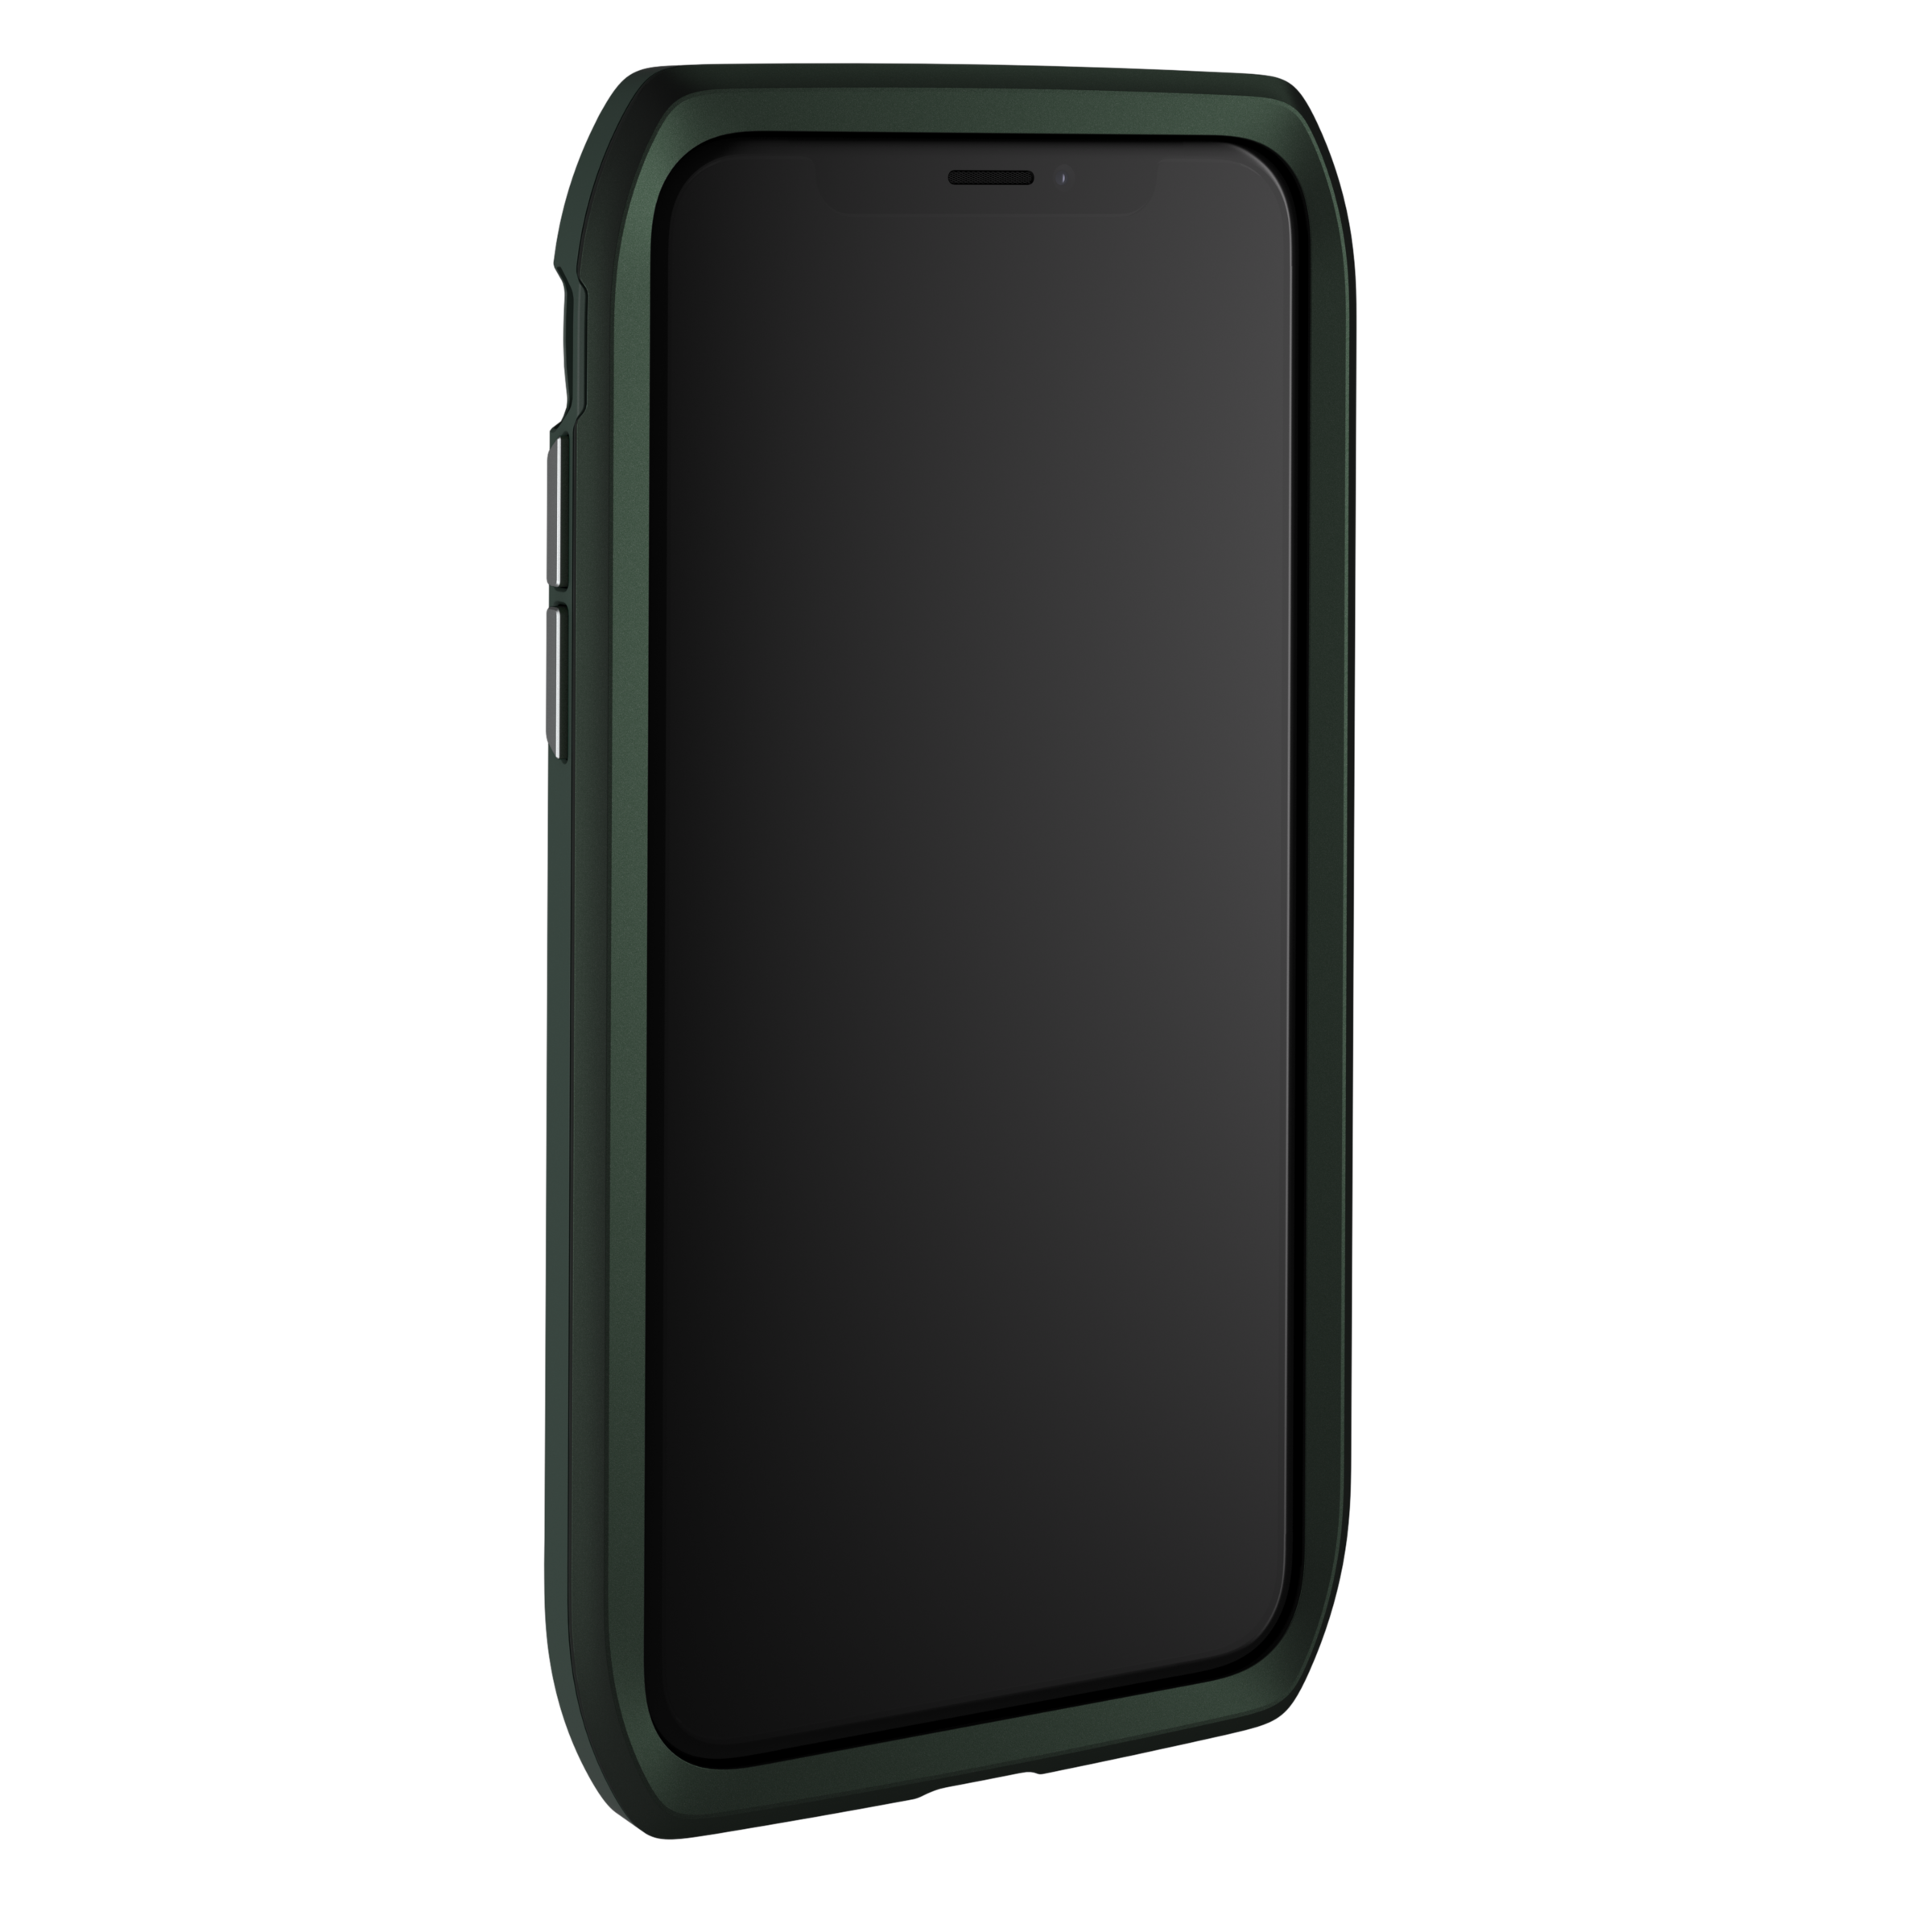 ENIGMA_IPXS-MAX_GREEN_3-4 Front.png